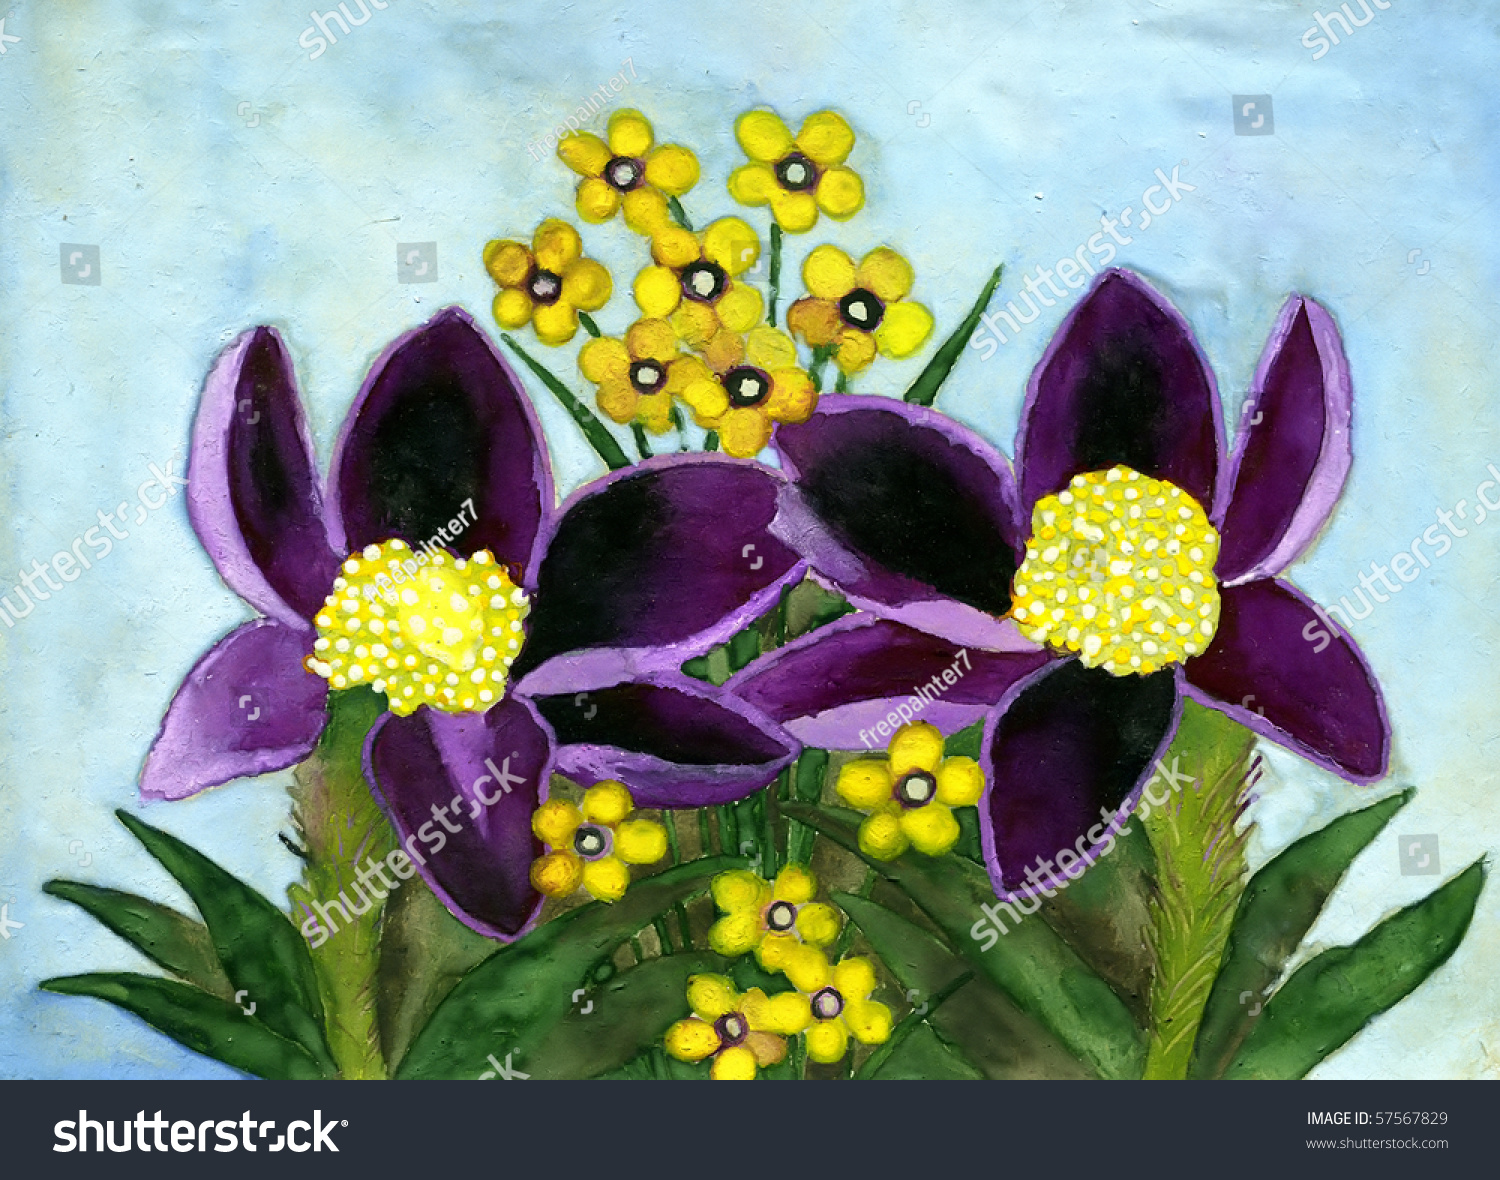 Royalty Free Stock Illustration Of Violet Yellow Flowers Gouache On